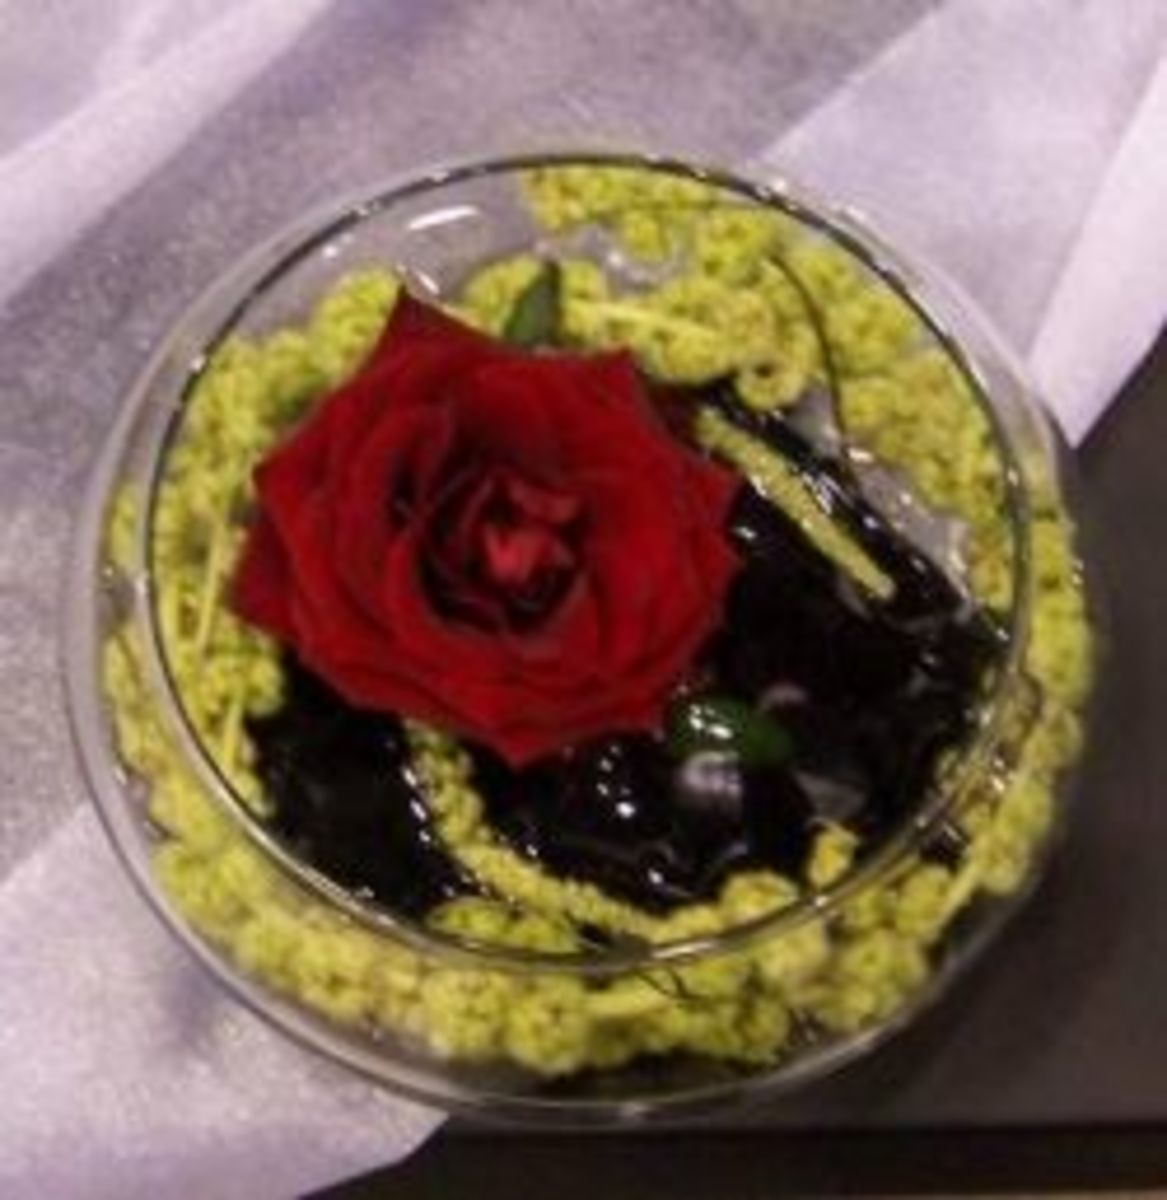 Grand Prix rose with green amaranthus in a shallow glass bowl.